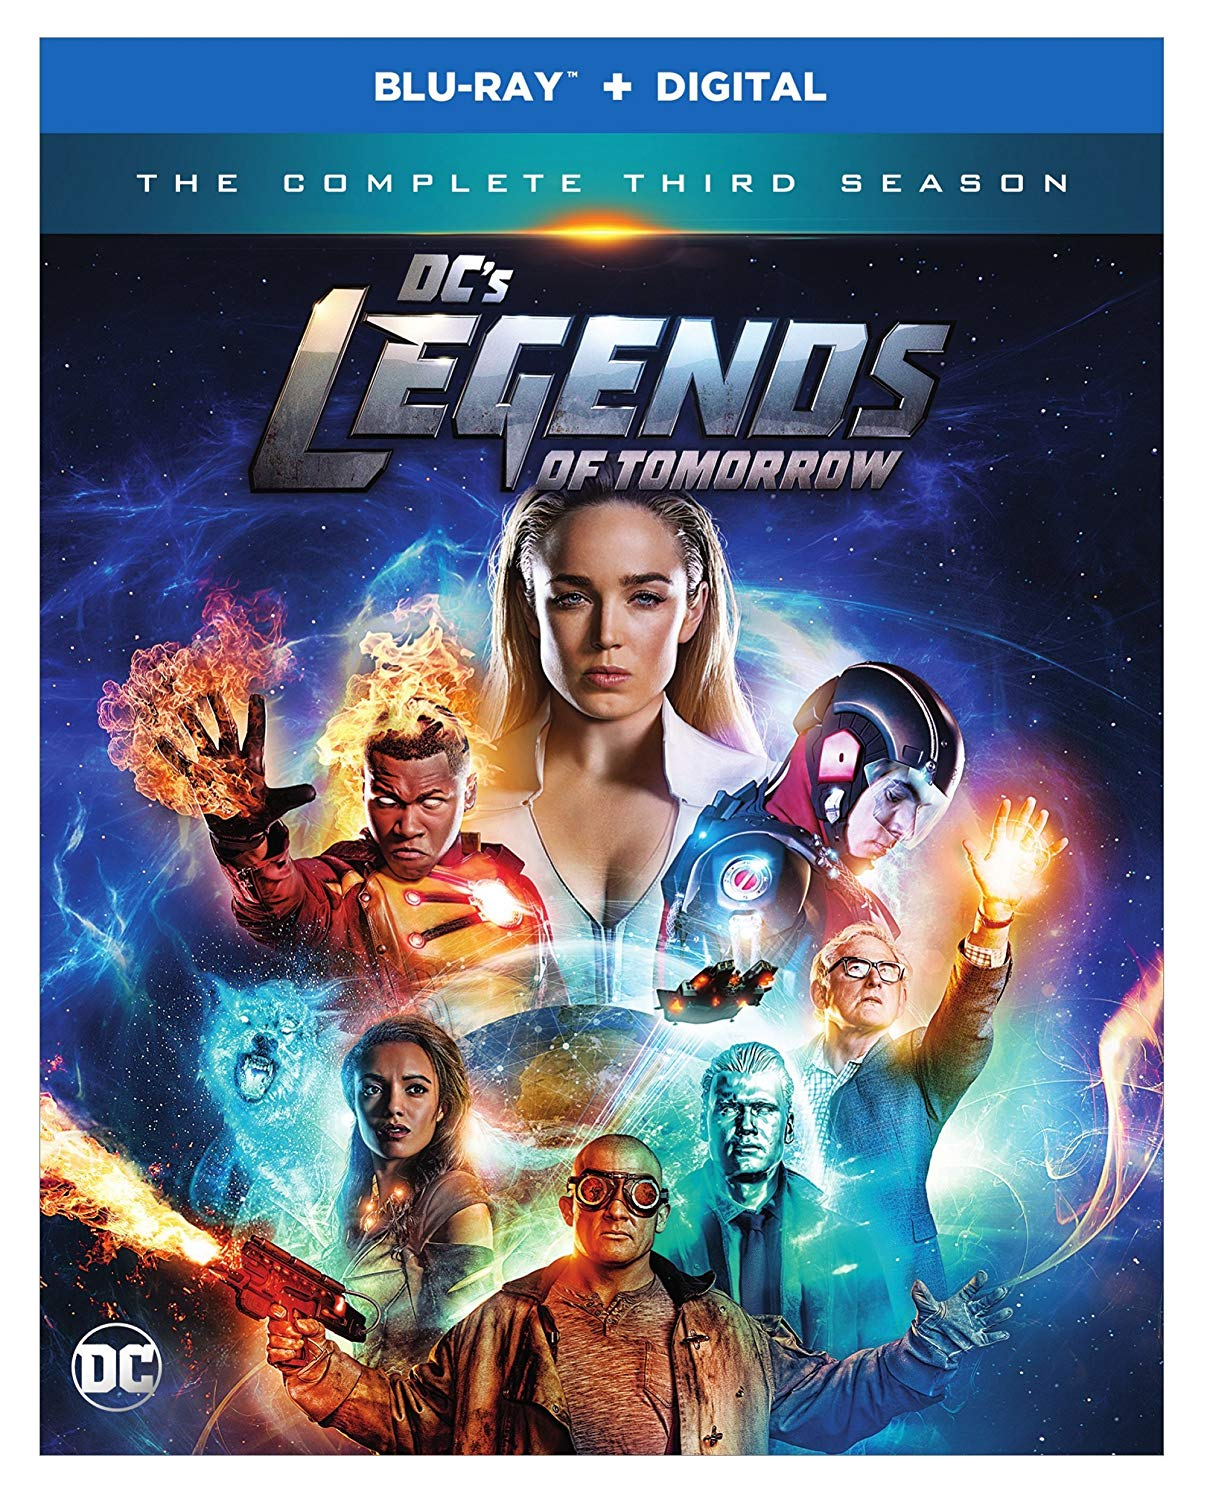 DC's Legends of Tomorrow [TV Series] - DC's Legends of Tomorrow: The Complete Third Season